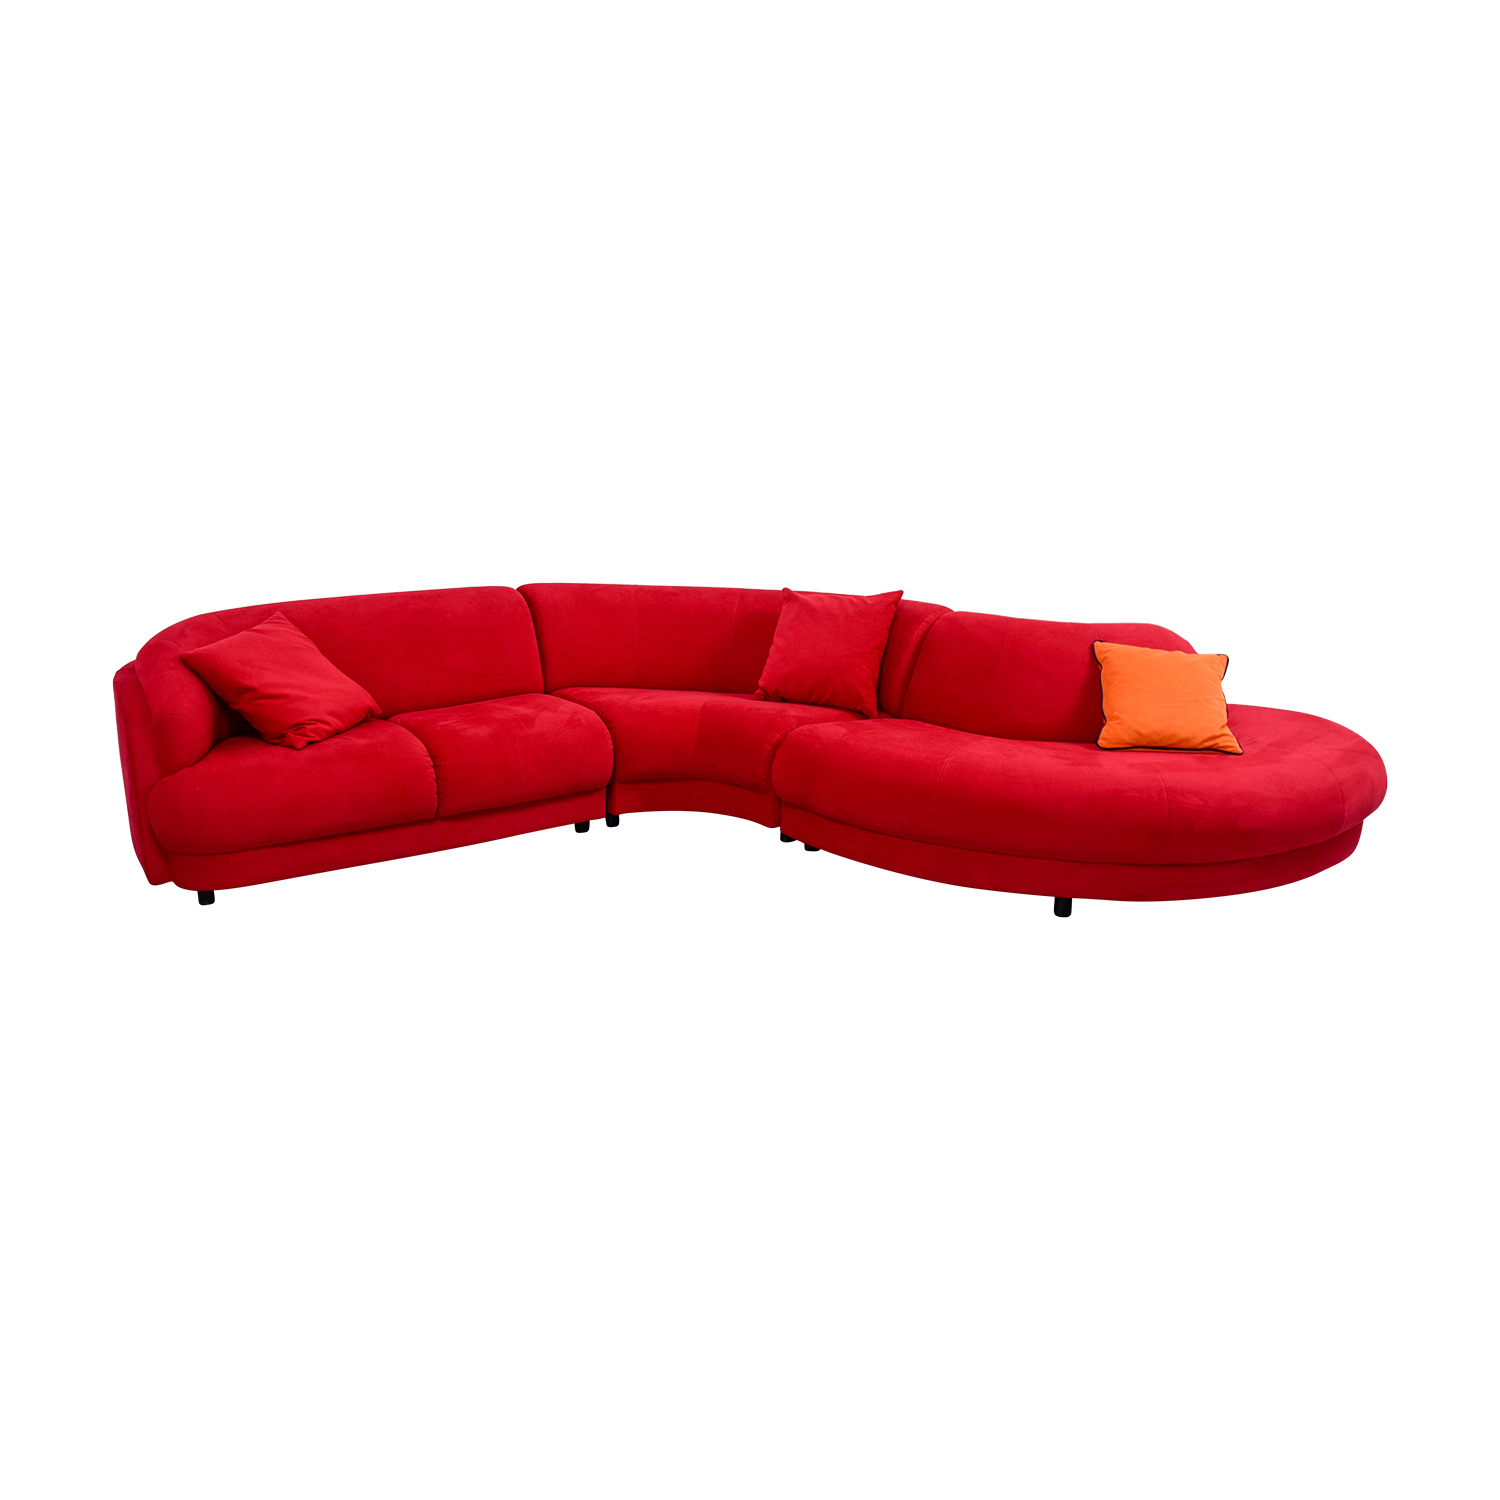 2nd hand sectional sofa connector hardware 66 off bright red curved with pillows sofas